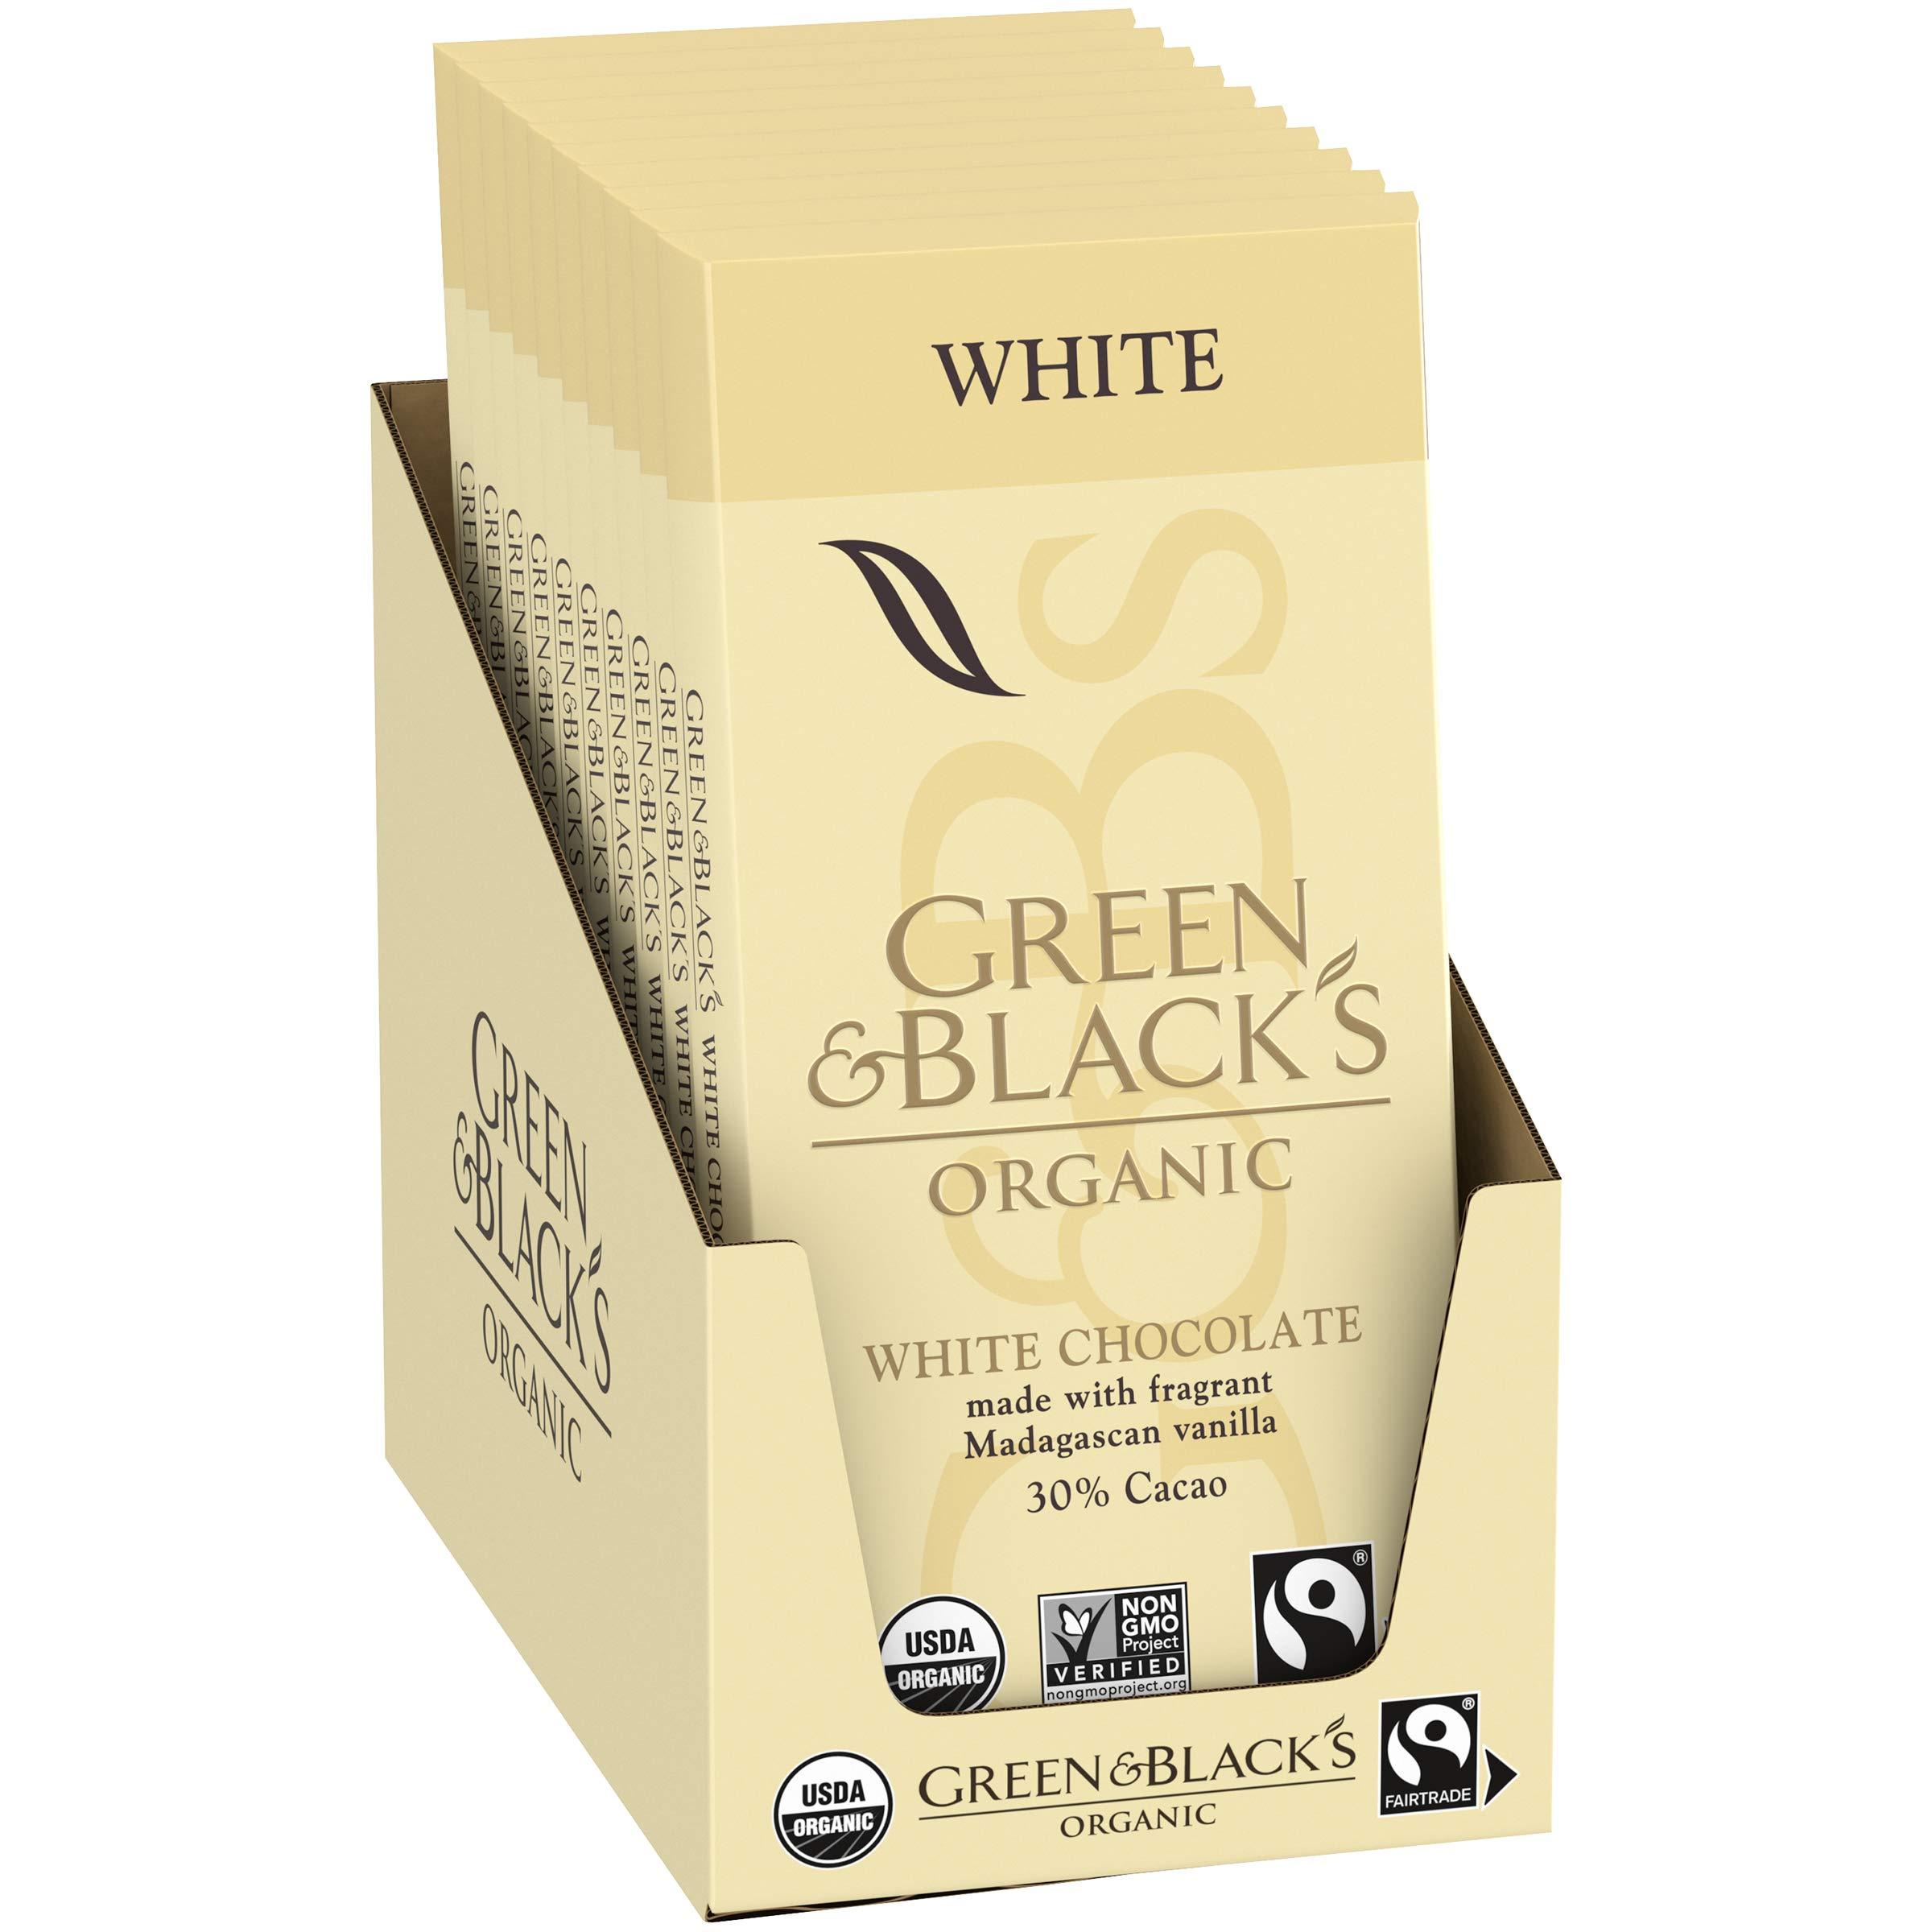 Green & Black's Organic White Chocolate with Vanilla, 30% Cacao, 10 Count per pack, 31.7 Ounce by Green & Black's